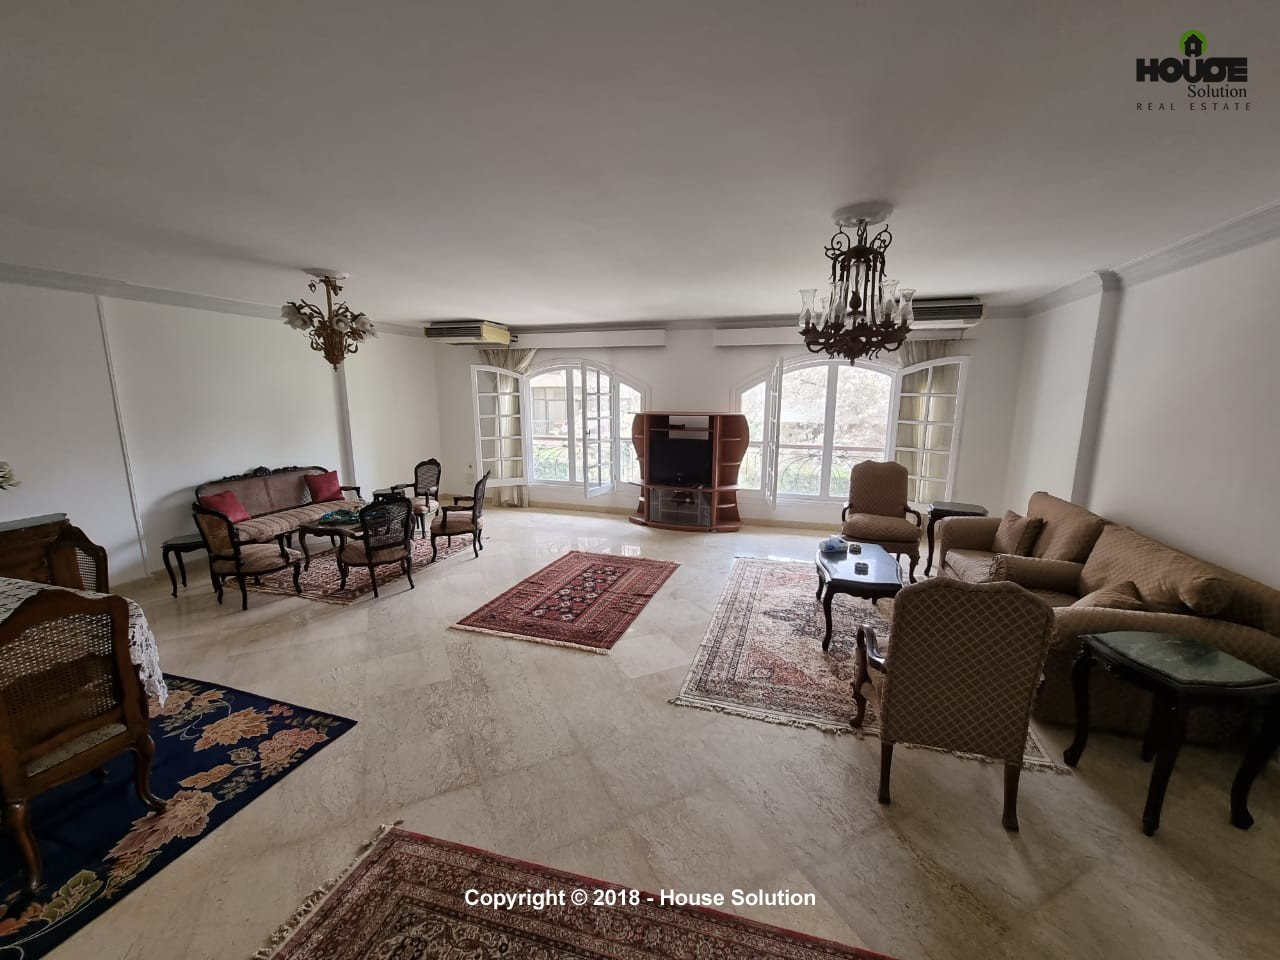 Amazingly Spacious Furnished Apartment For Rent Located In Sarayat El Maadi - 4889 Featured Image